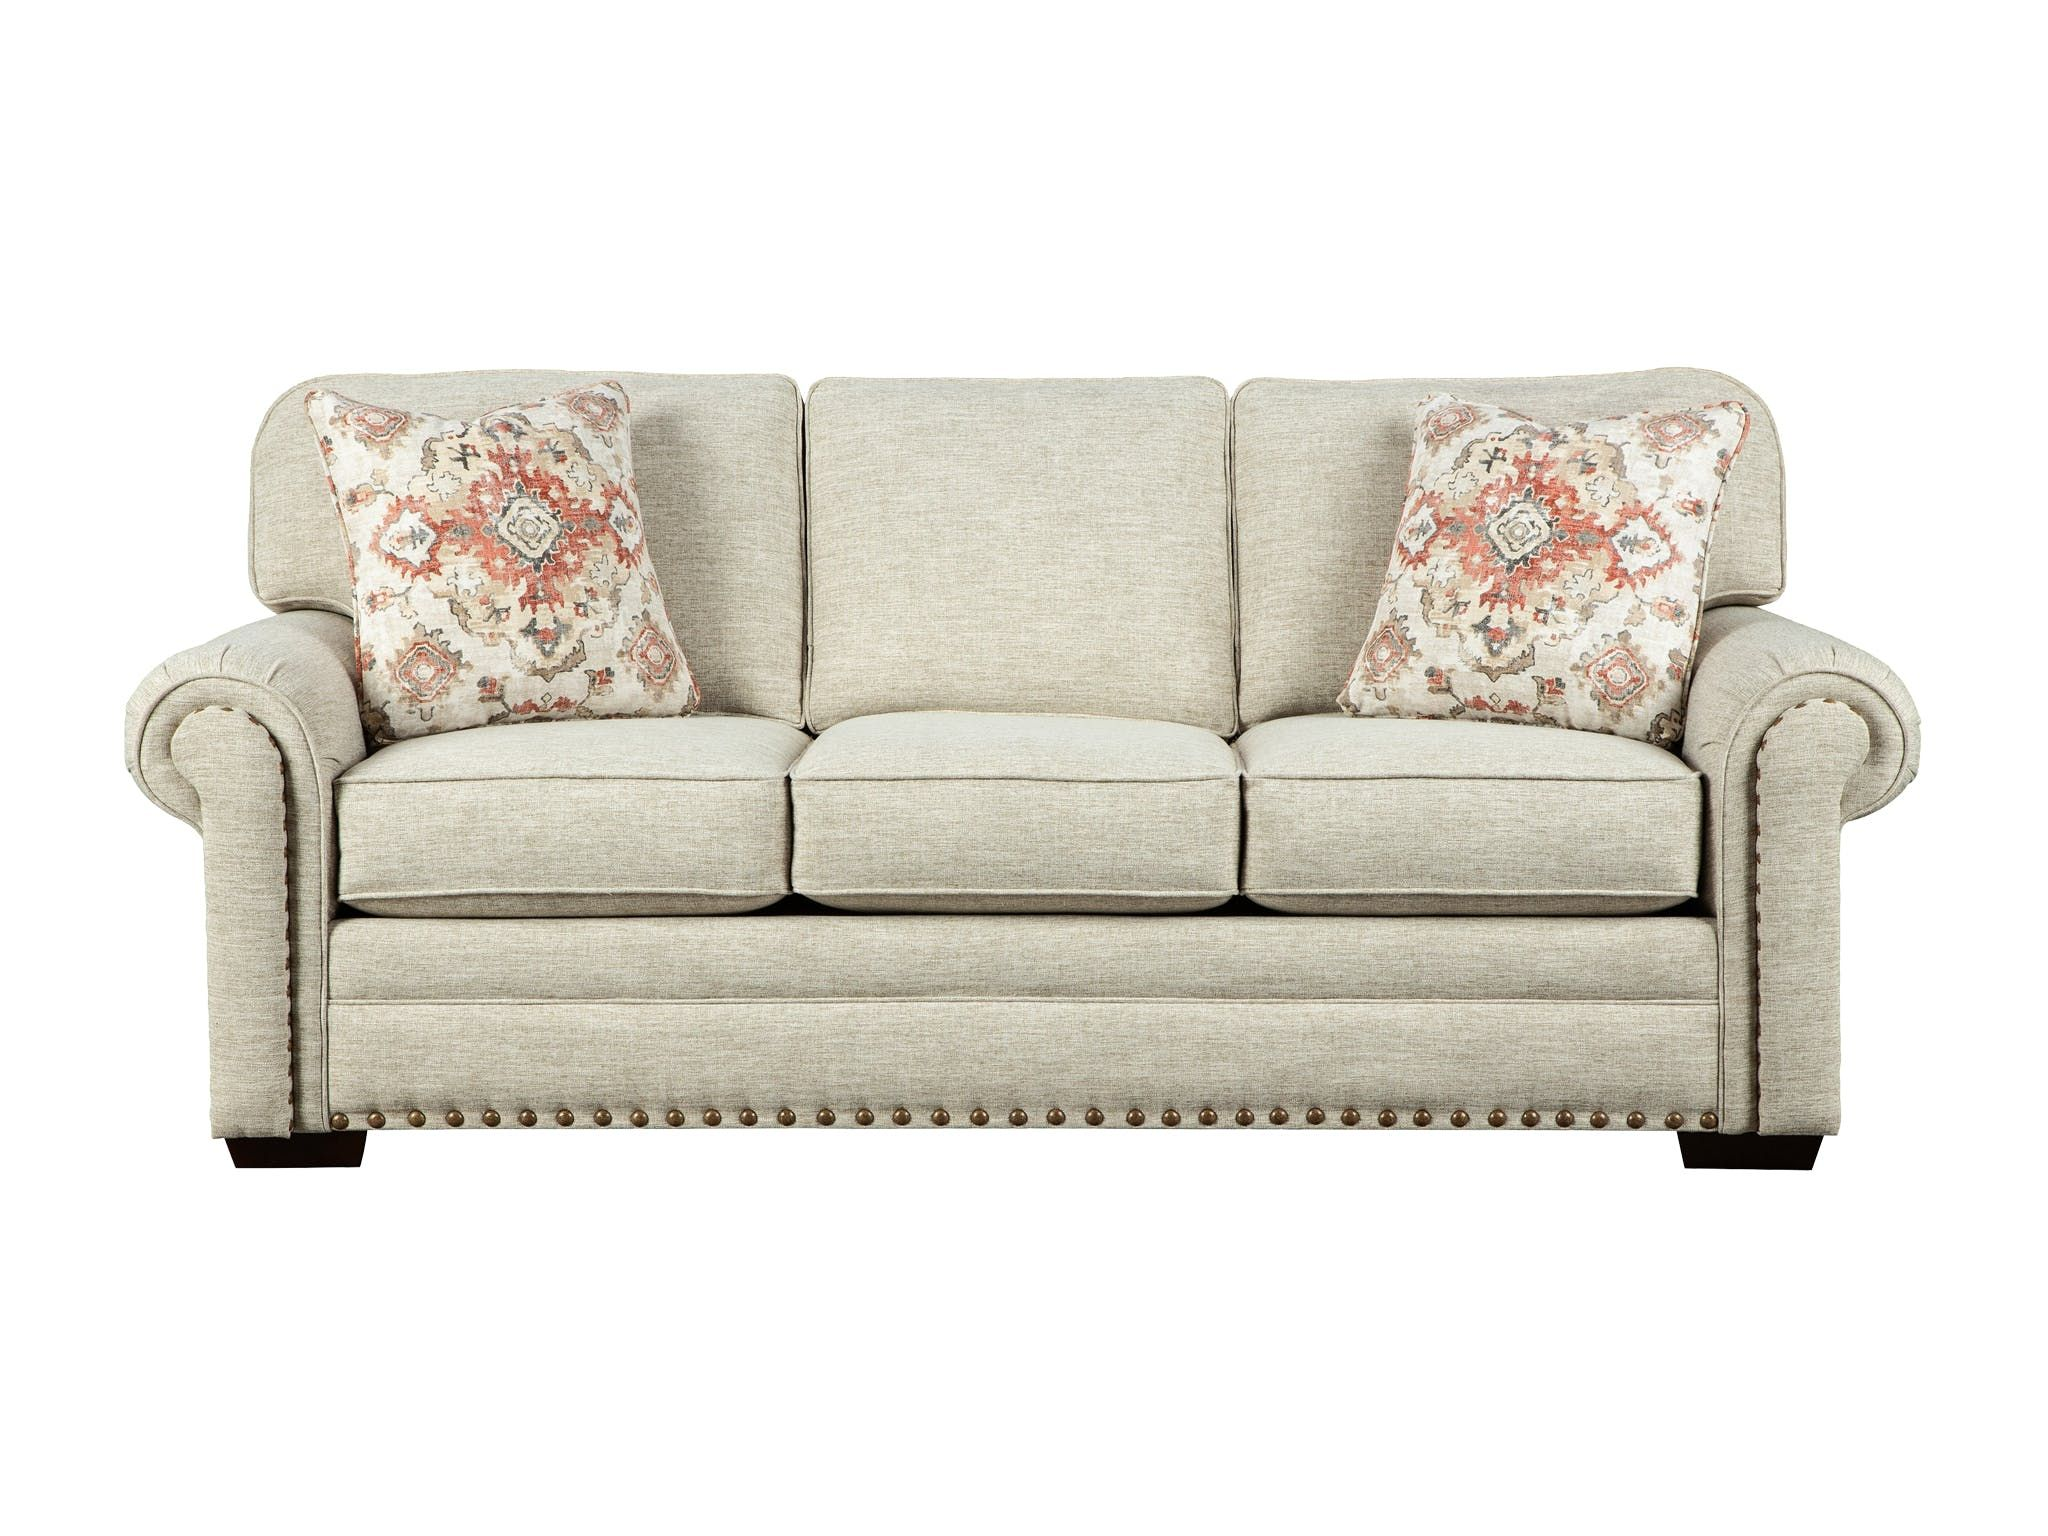 Casual Sophistication Comes To Life In This Updated Classic Sofa